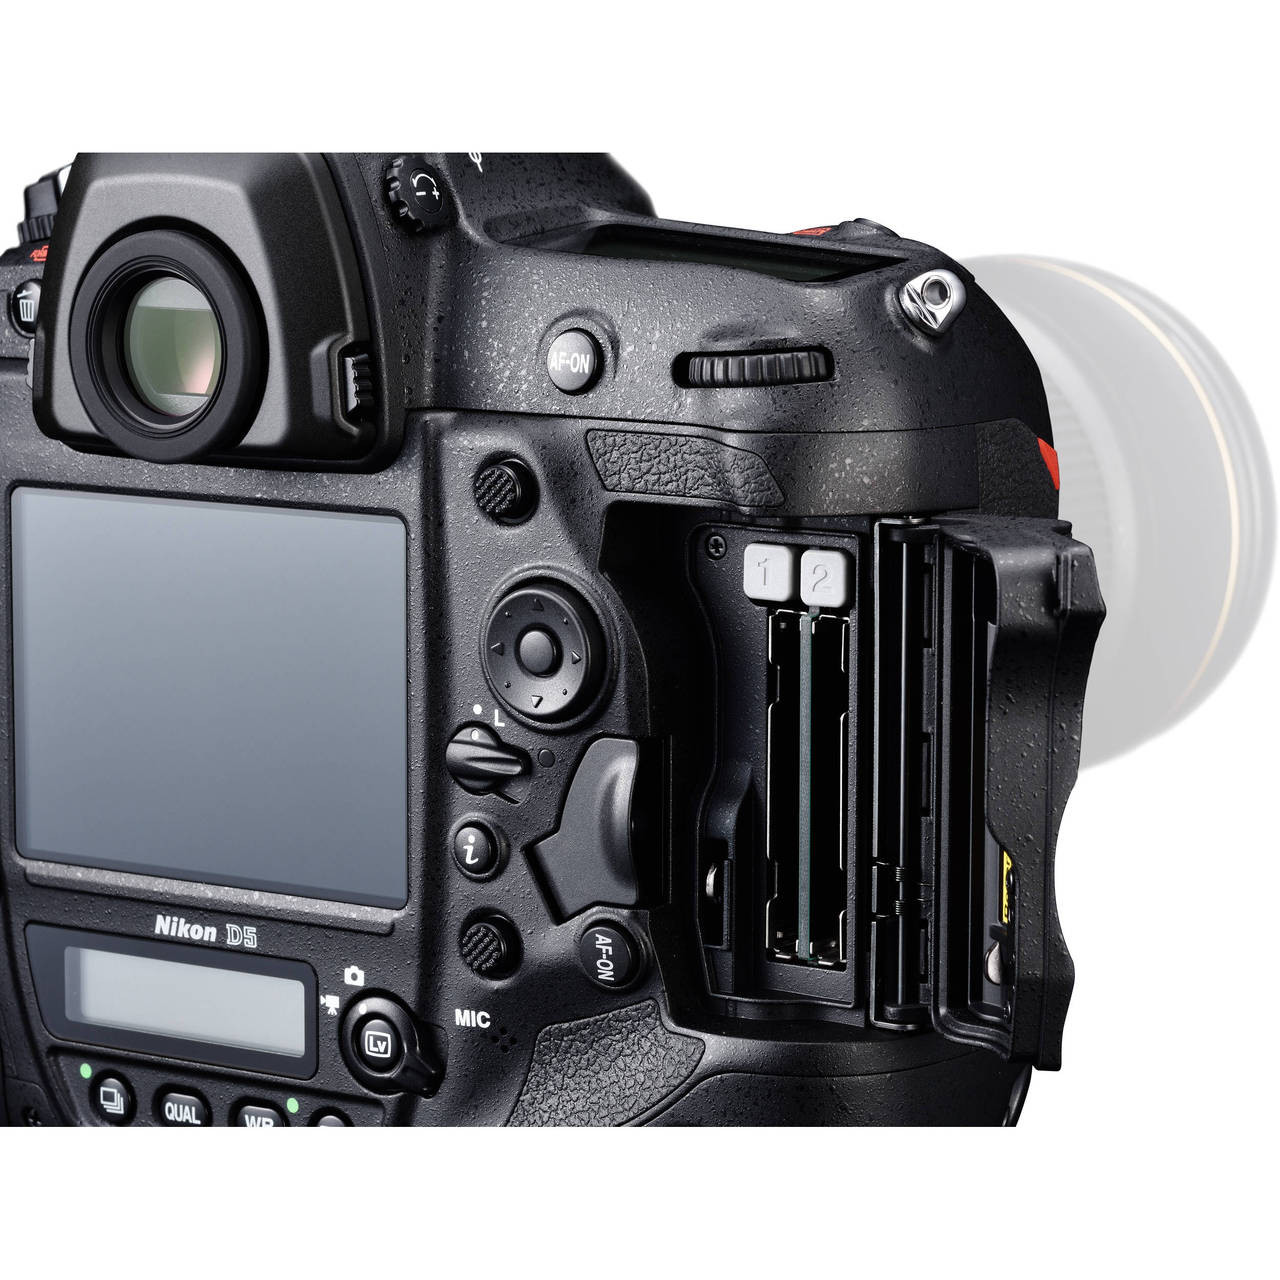 Nikon D5 Body with Dual CF Slots Open Slot Door